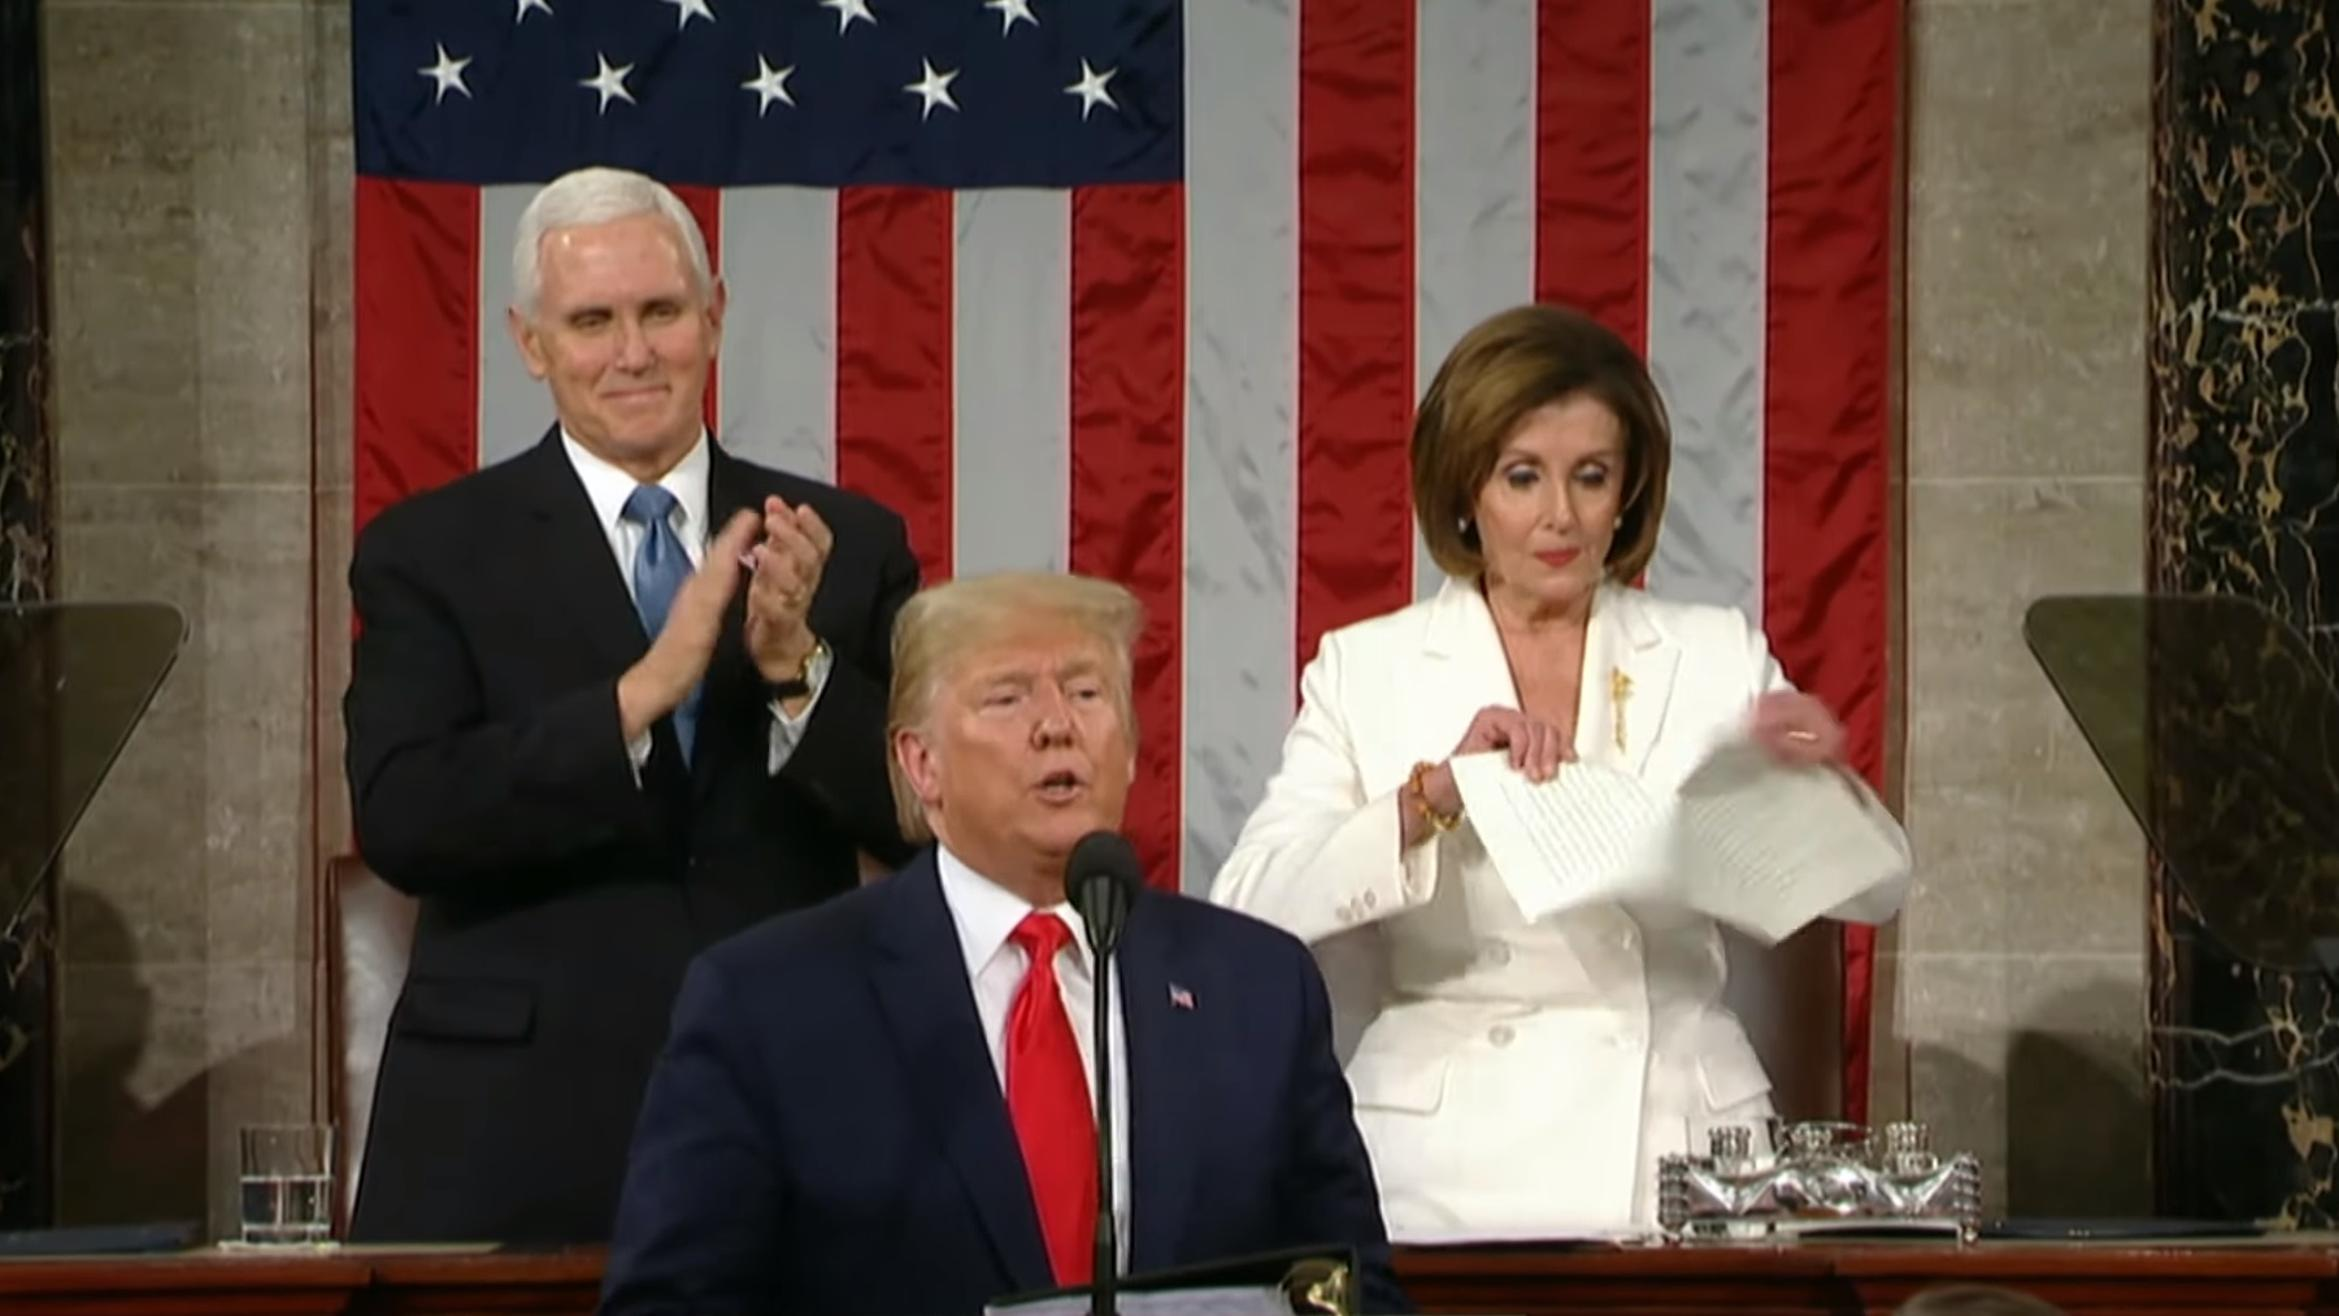 Image result for images of end of impeachment of Trump Pelosi shred paper of Trump's speech